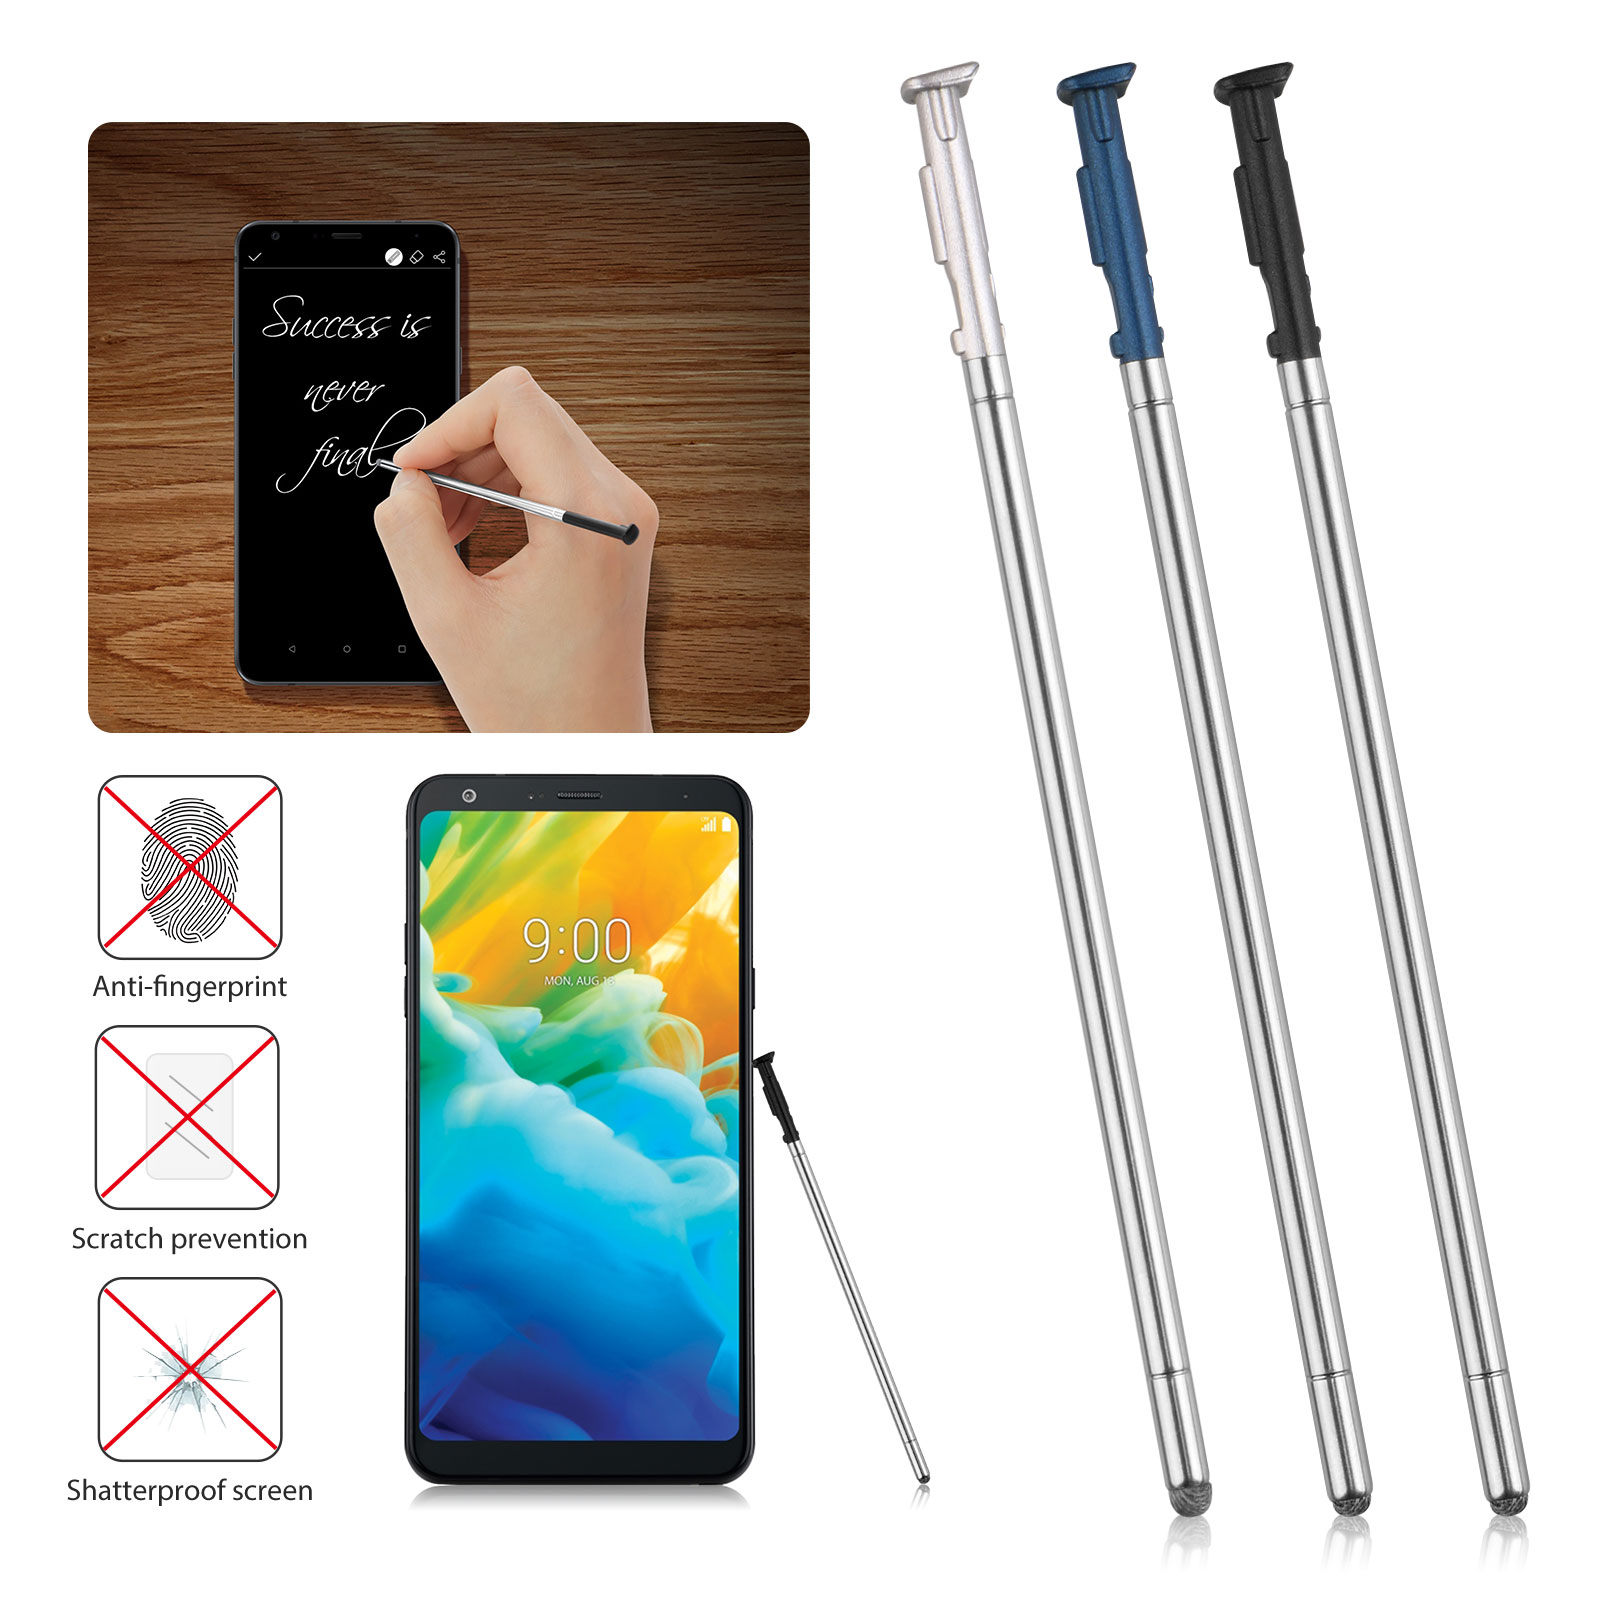 Touch Stylus Pen Replacement Free For LG Stylo 4 Q Stylus Q710 Q710MS L713DL W